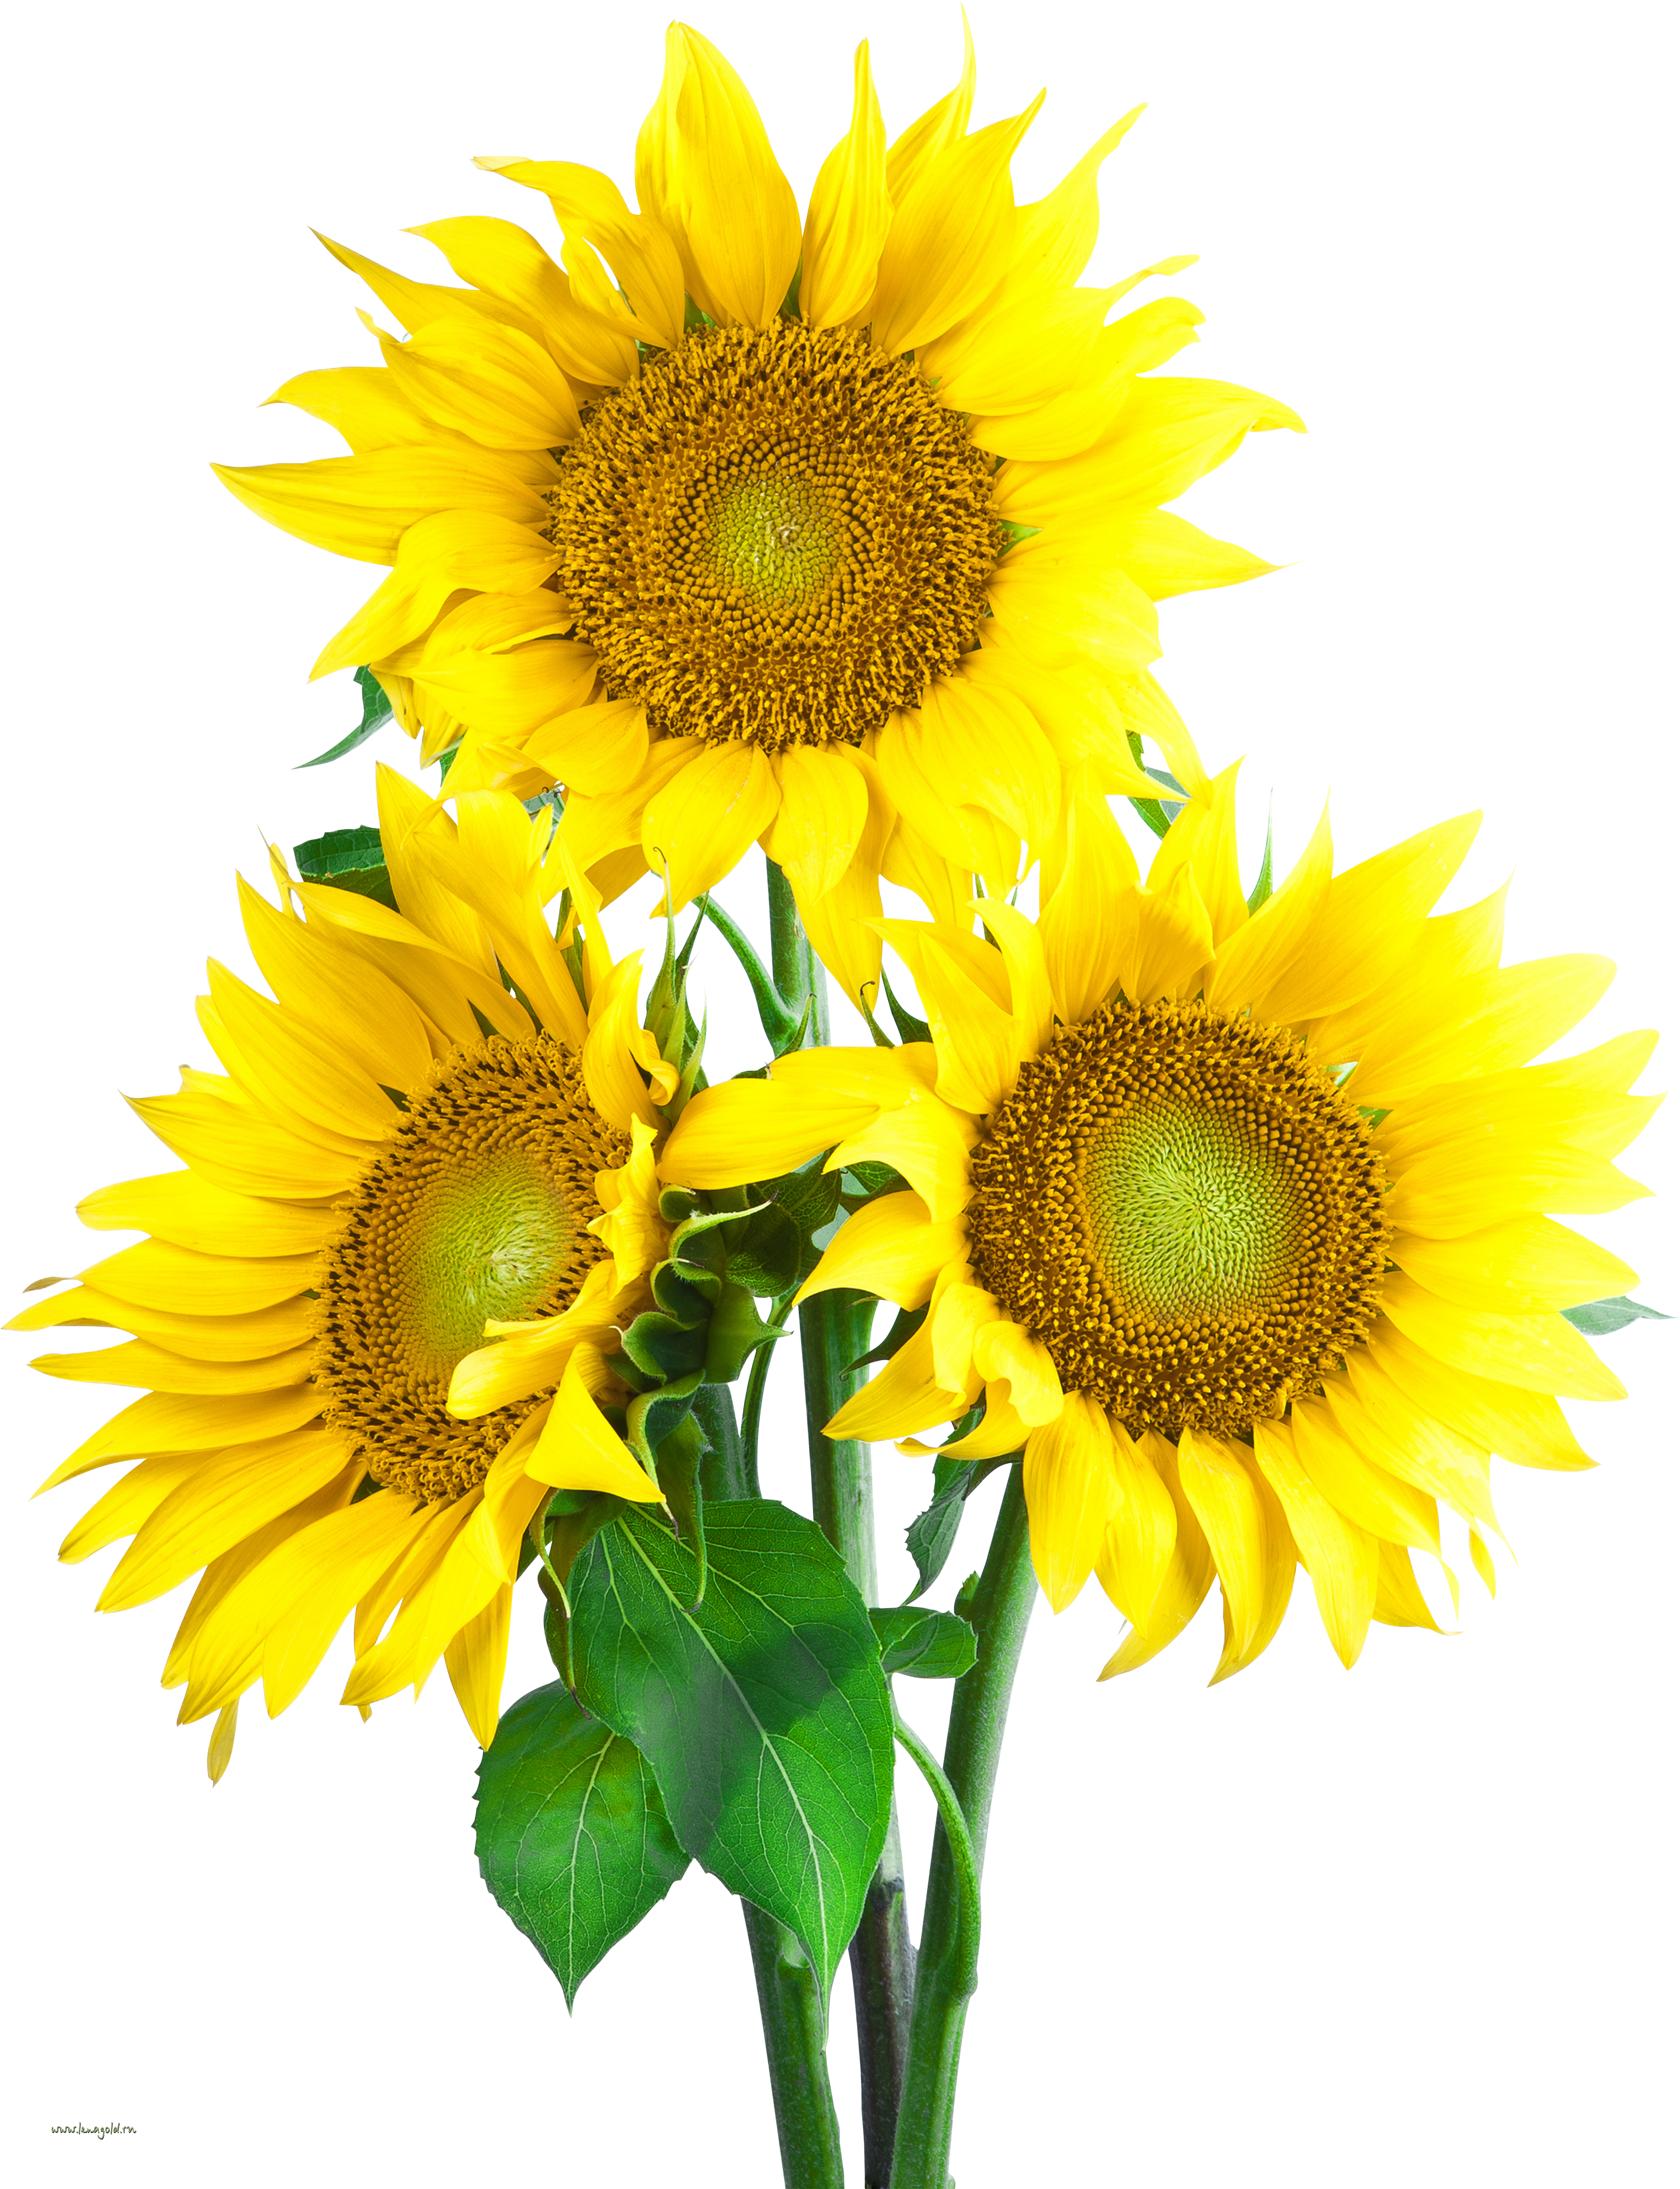 Sunflower png transparent. Images free download